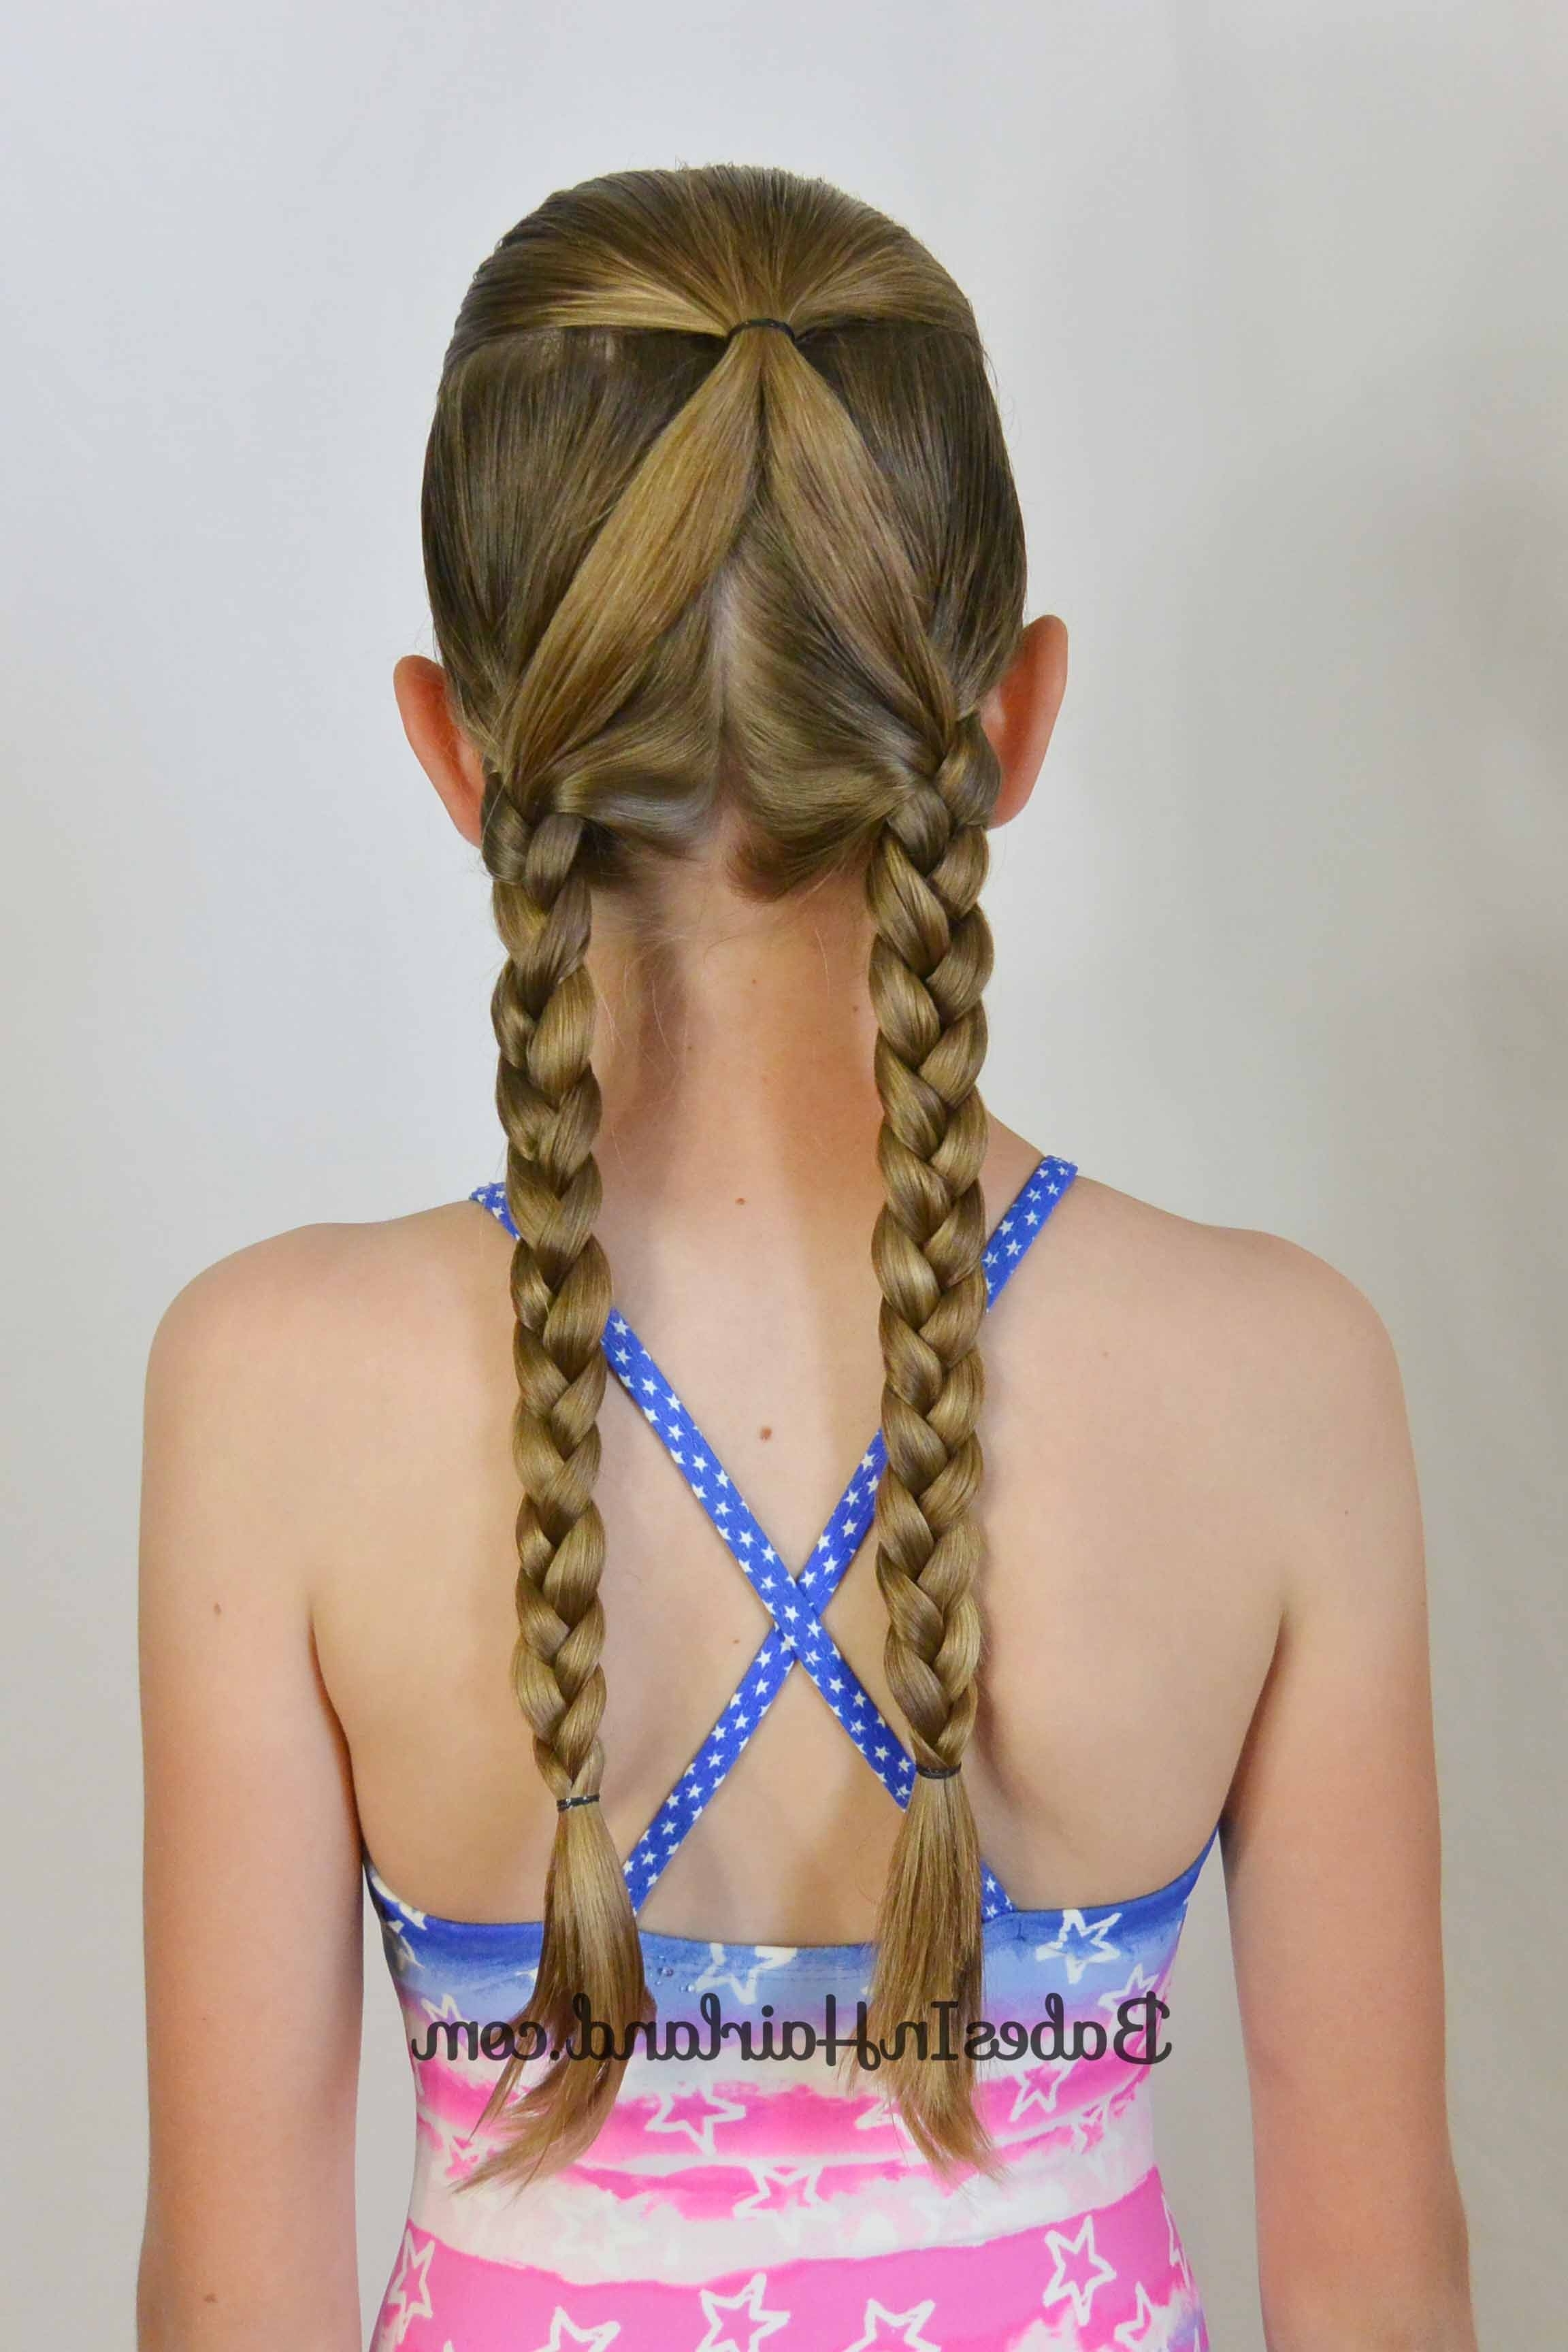 10+ No Fuss Hairstyles For Summer Or The Pool – Babes In Hairland With Latest Beach Friendly Braided Ponytails (View 14 of 20)